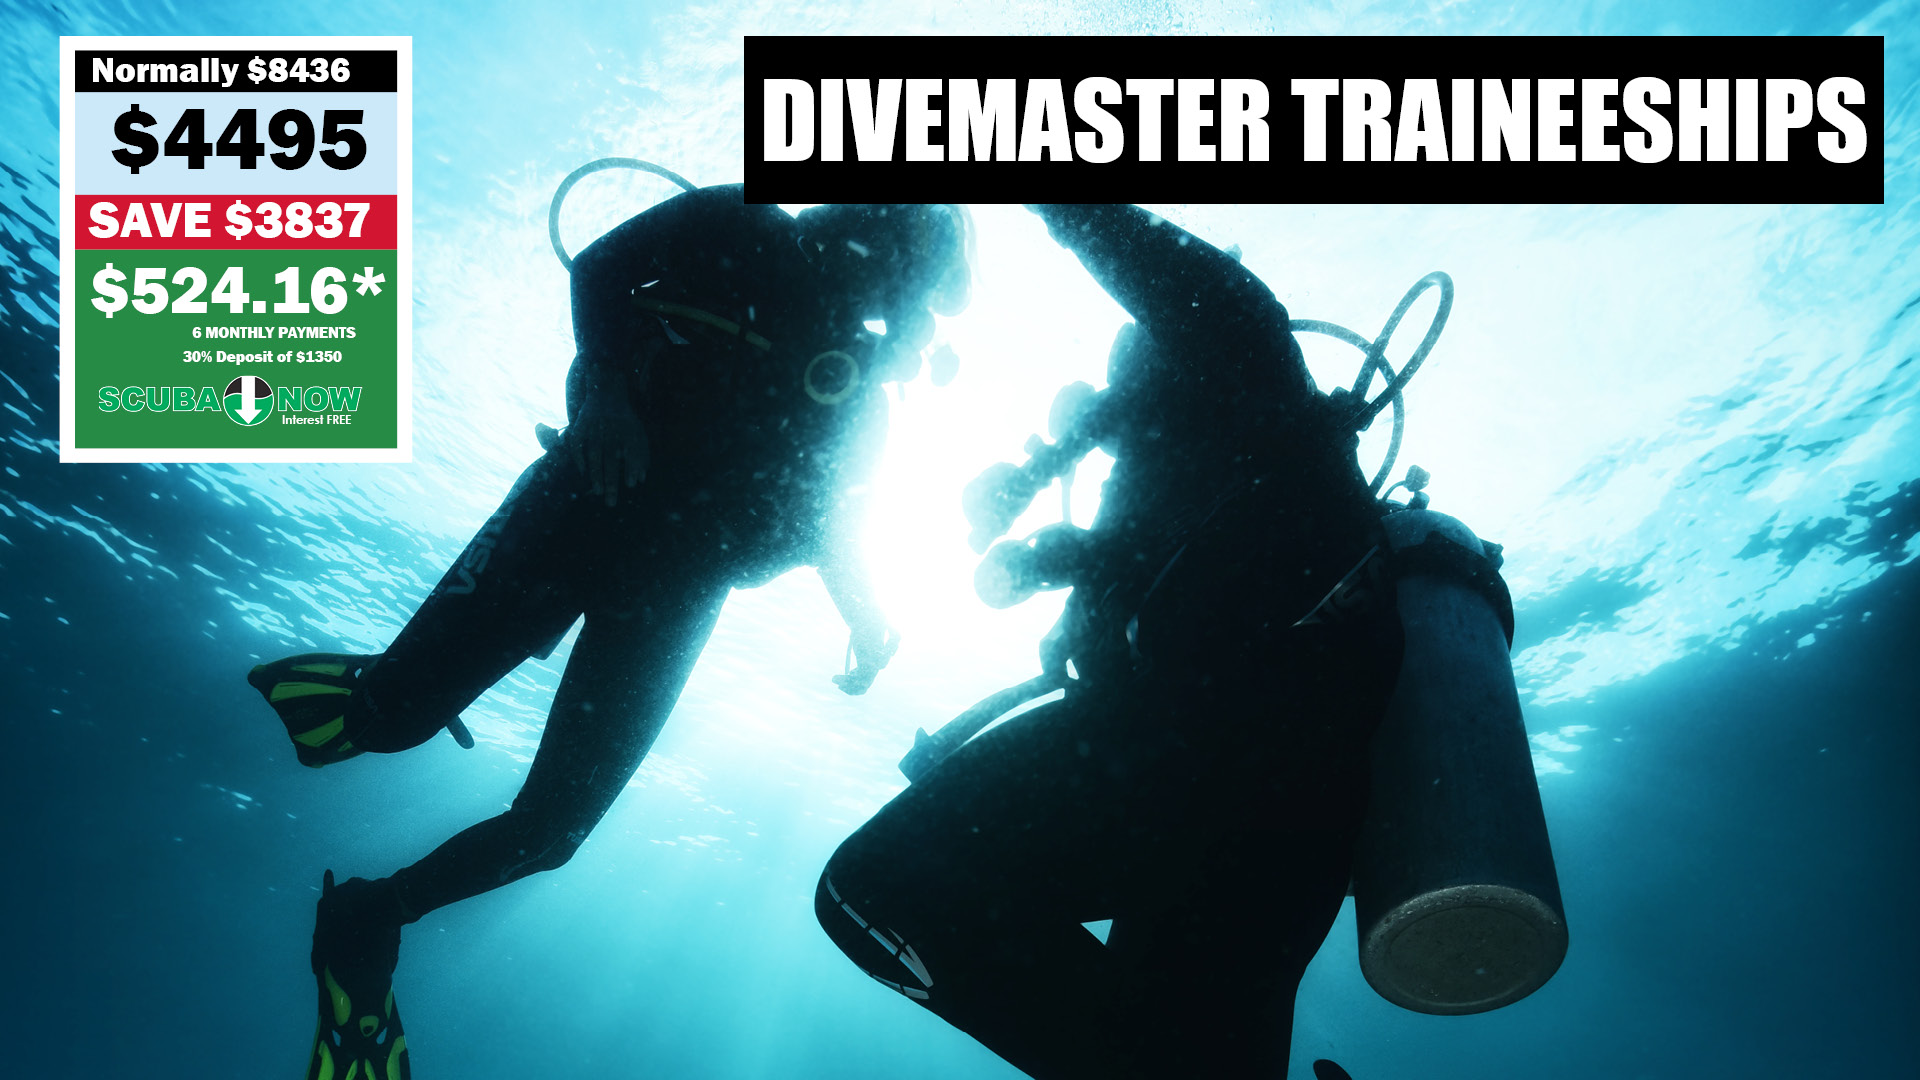 Divemaster Traineeship Program